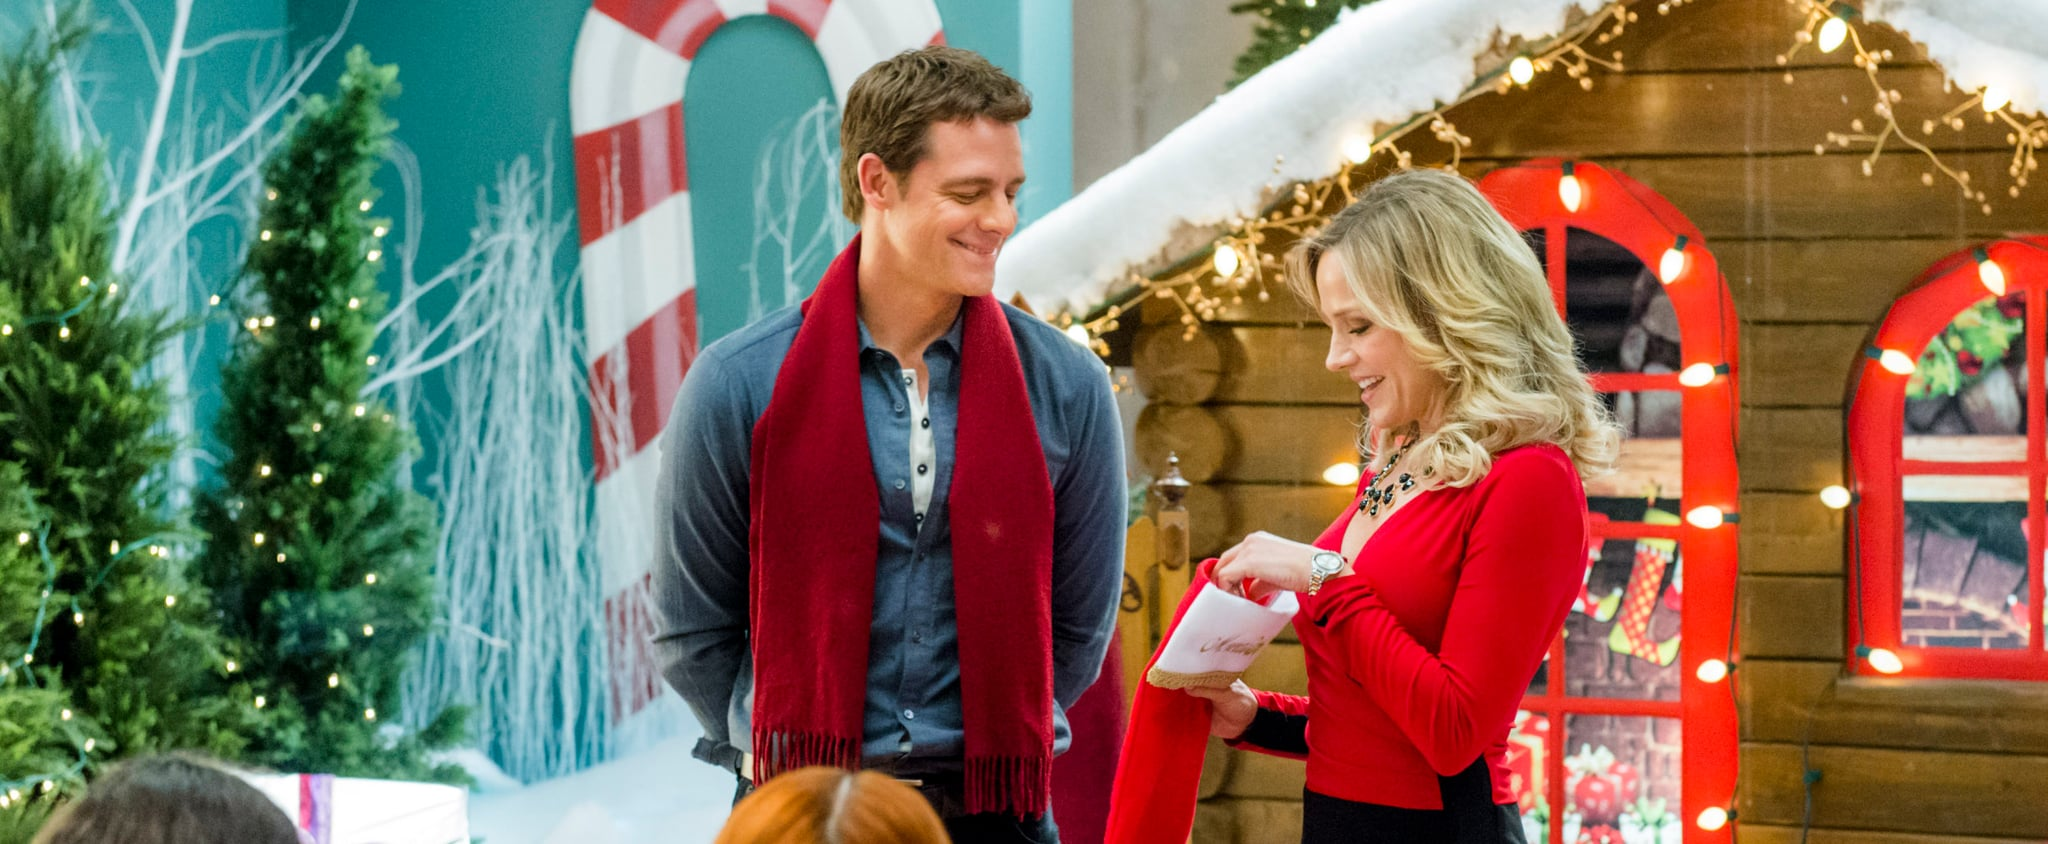 40 New Christmas Movies Coming to Hallmark Channel in 2019